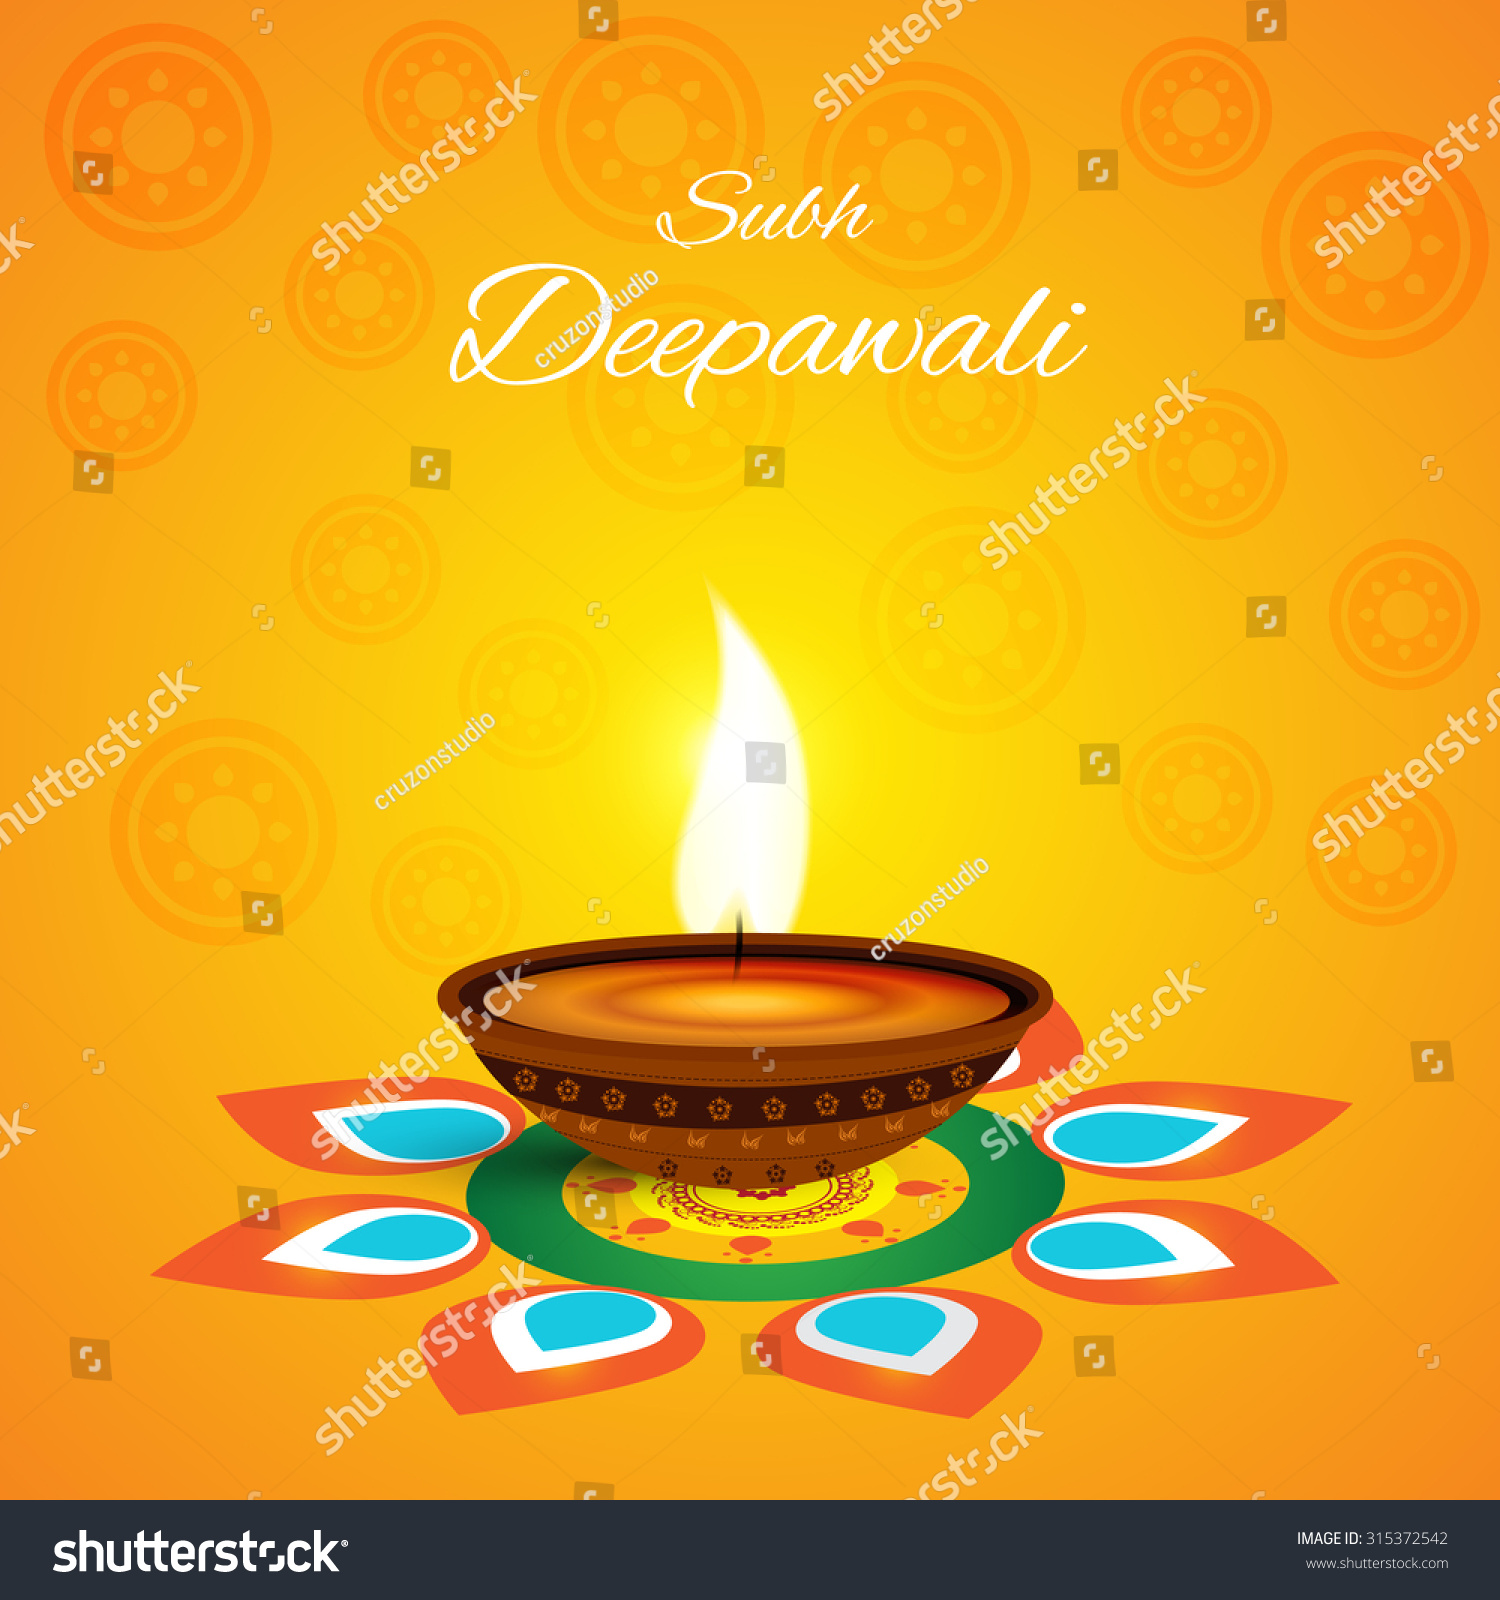 Vector Illustration Or Greeting Card For Diwali Ez Canvas